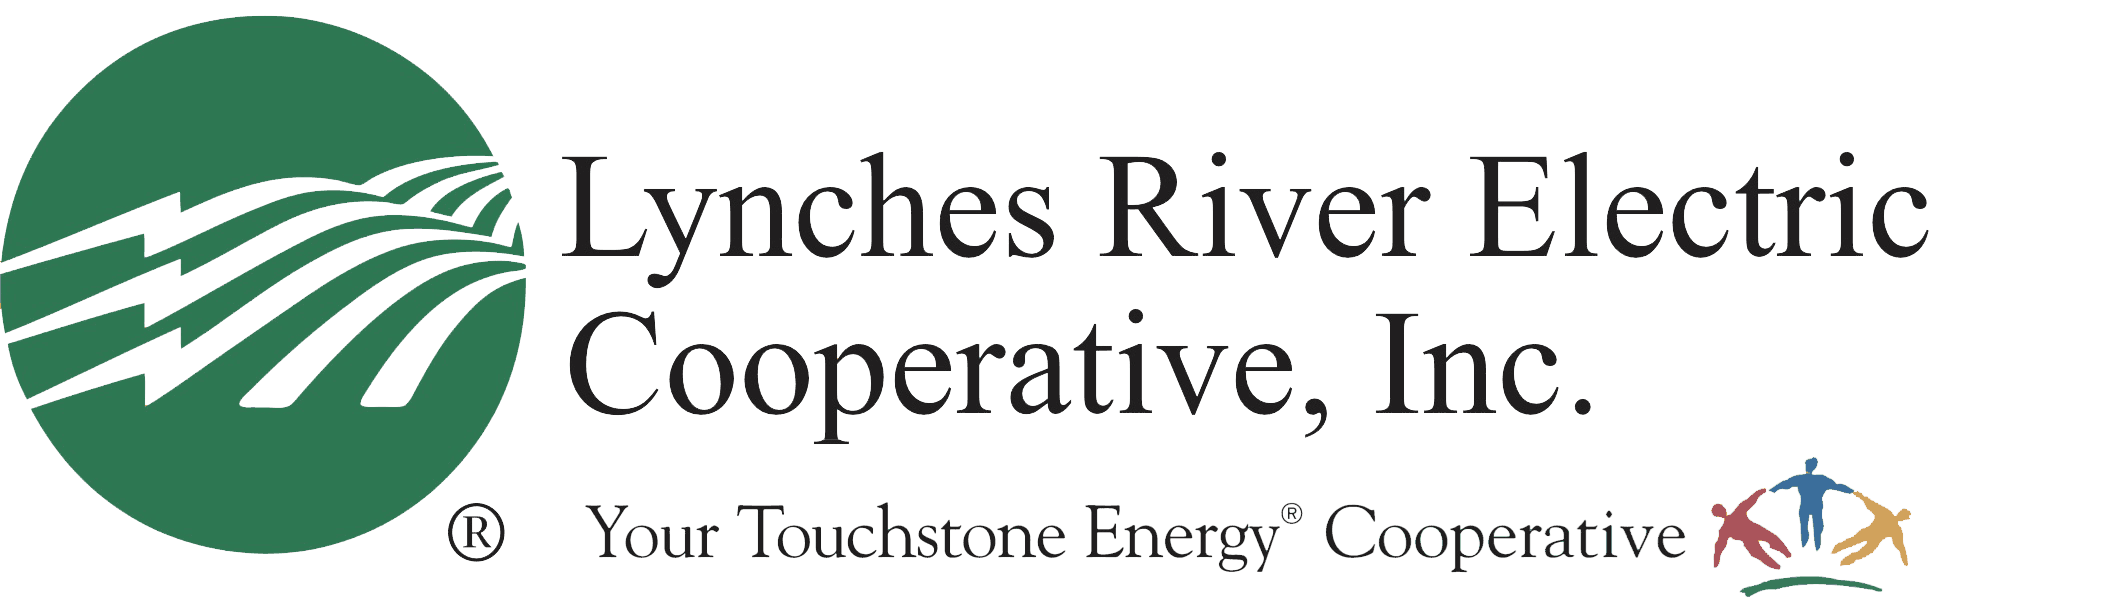 Lynches River Electric Cooperative